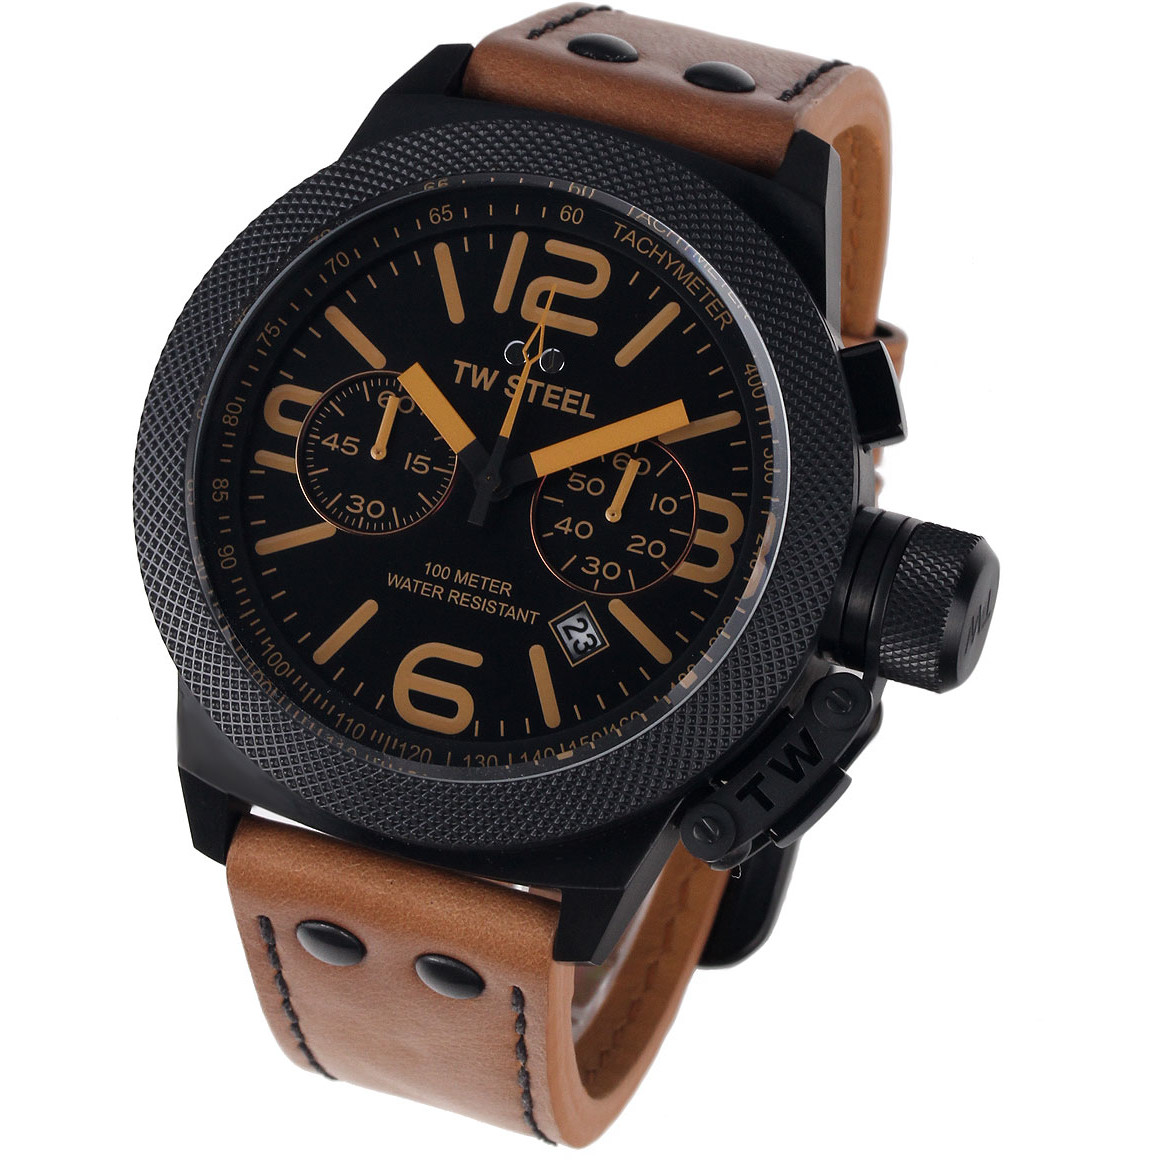 Ceas barbatesc TW-Steel CS44 Canteen Leather Chronograph de mana original